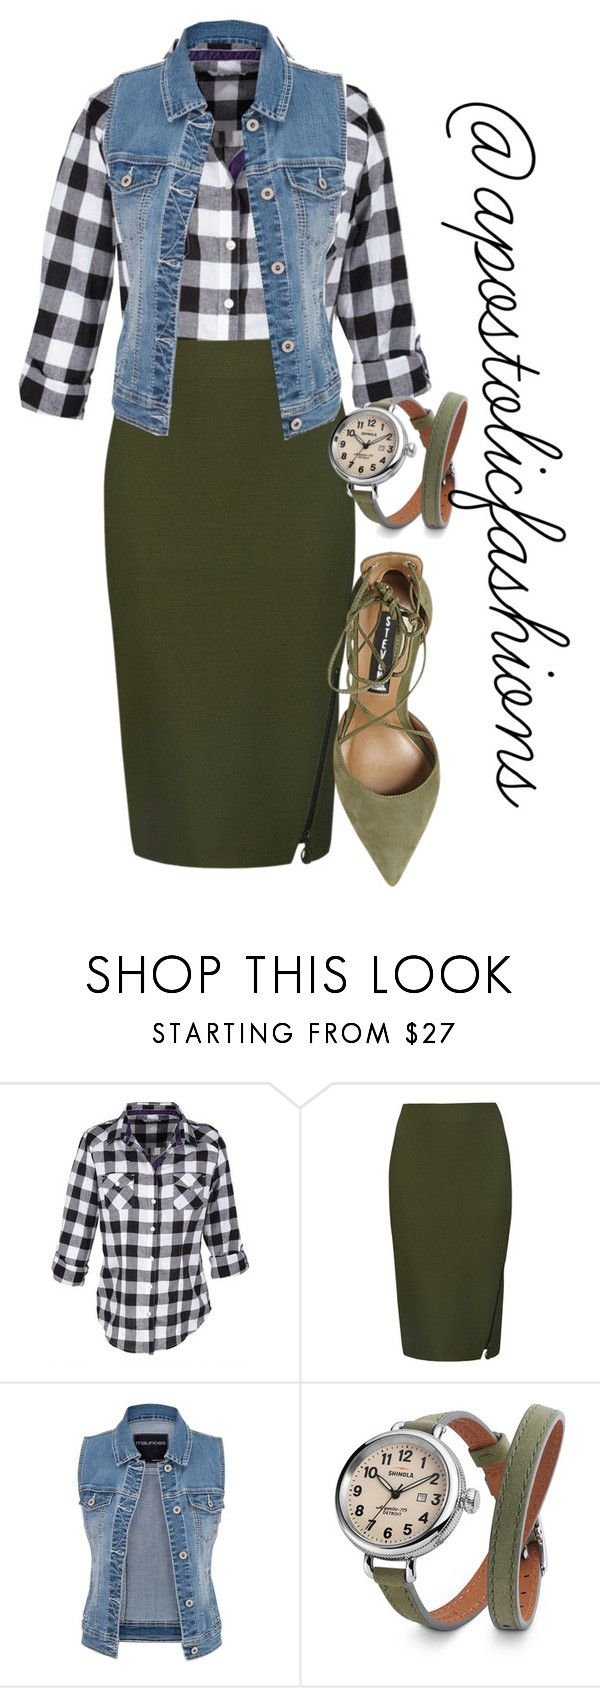 """Apostolic Fashions #1357"" by apostolicfashions ❤ liked on Polyvore featuring M&S Collection, maurices, Shinola, Steve Madden, modestlykay and modestlywhit"